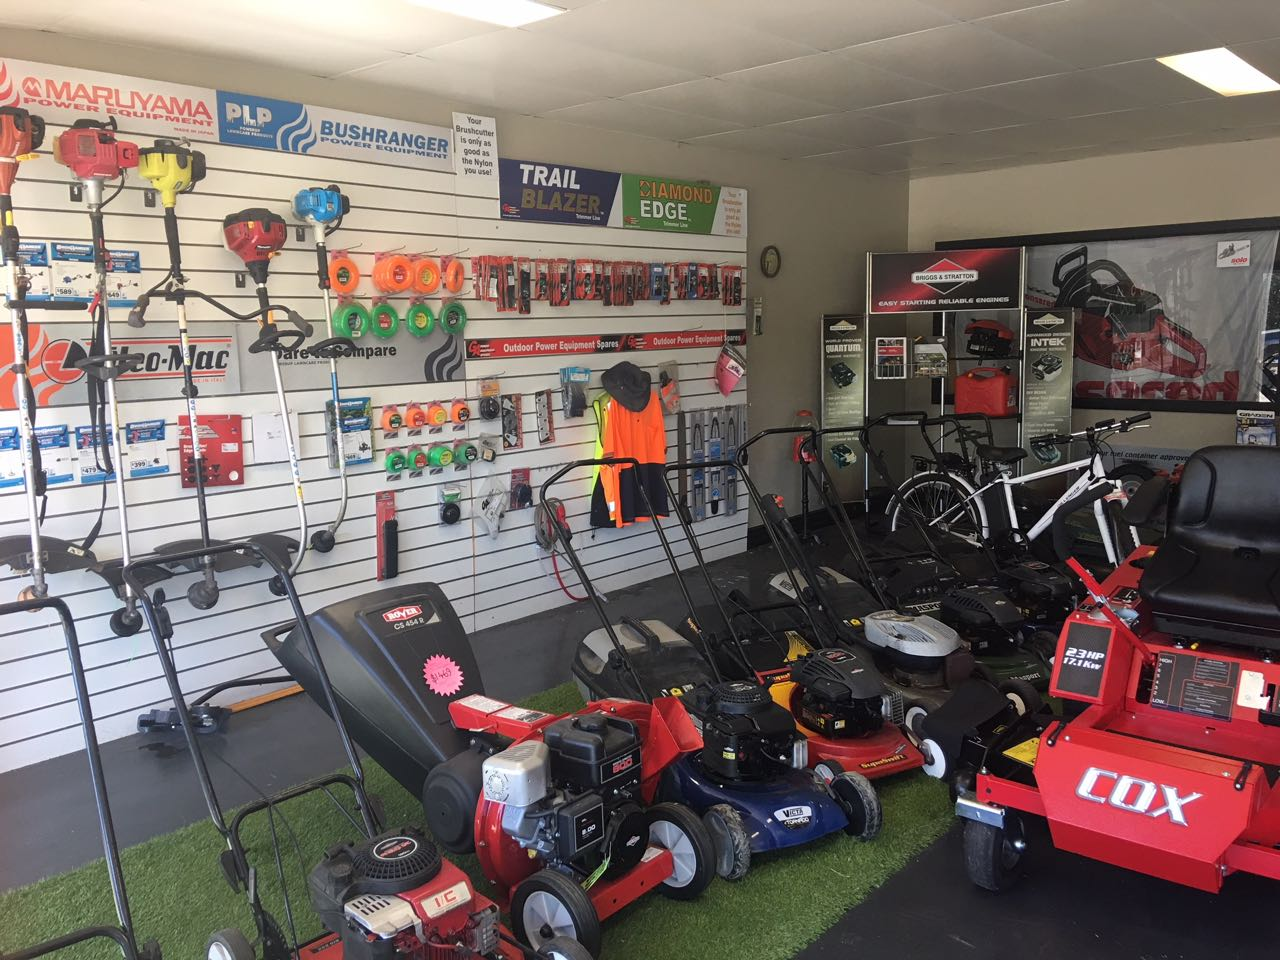 Law Mower, Outdoor equipment Sales and Service Business for Sale Gippsland